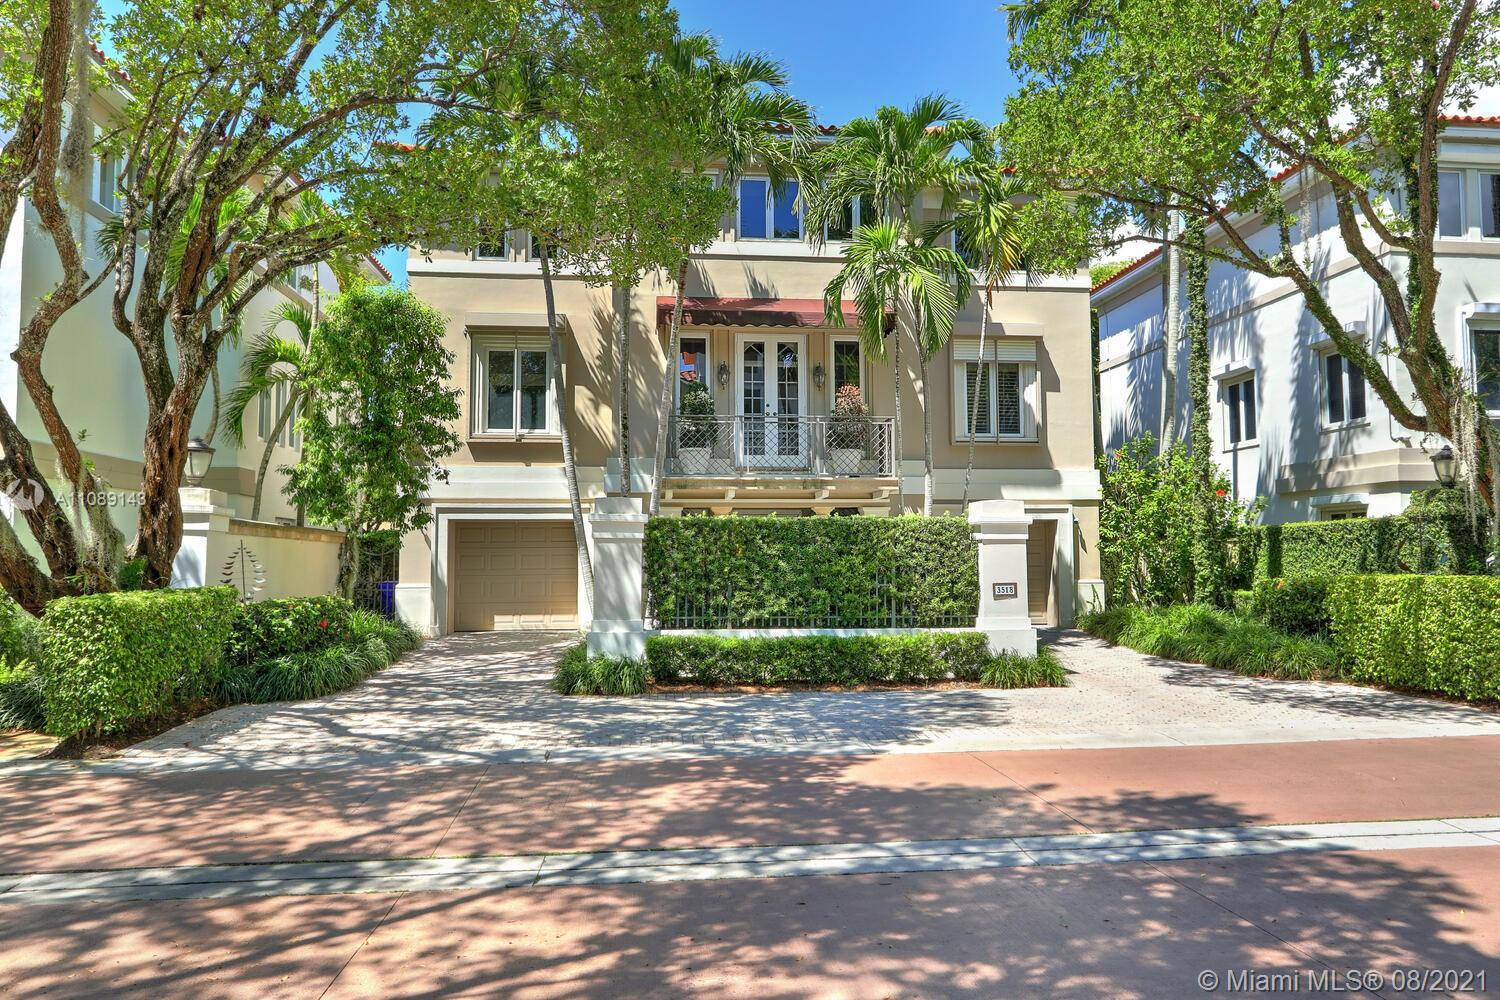 """Live in one of Coconut Groves most sought after gated community """"Bayshore Villas"""". A private enclave of only 25 residents one of the most beautiful, lushly landscaped streets on Coconut Grove. This 3 story villa has a fabulous floor plan 4 bedrooms, 4 baths with over 5,600 SQ FT of living space, office, bonus room, family/living/dining room and gorgeous master suite with beautifully built out spacious his & hers closets. Impeccably maintained home, freshly painted, impact glass throughout with extra storm protection (Electric shutters). Community pool/Spa, 2 tennis courts, docks. Best schools, parks, Coconut Grove Marinas, restaurants and shopping. Walk, jog or bike to the heart of Coconut Grove. Enjoy urban living."""